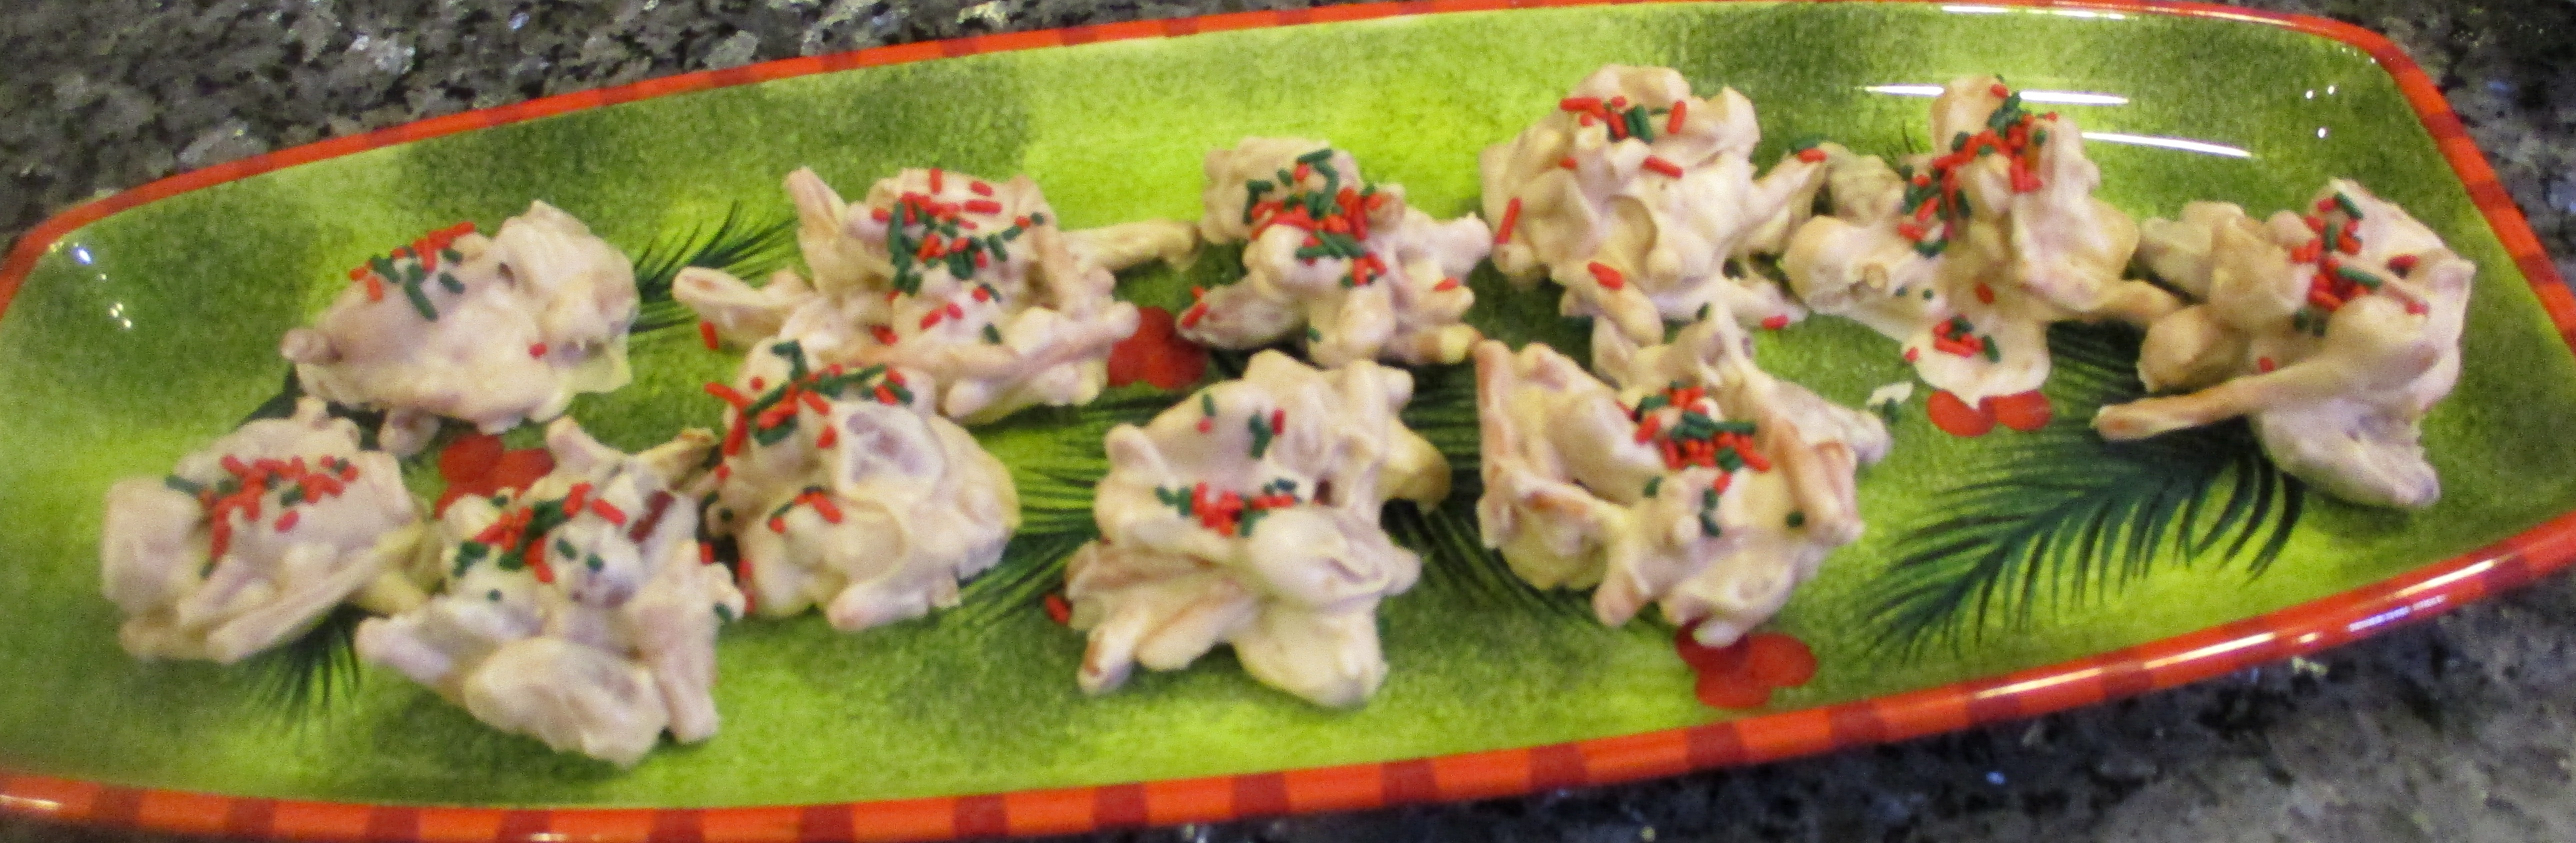 Slow Cooker Christmas Clusters Recipe